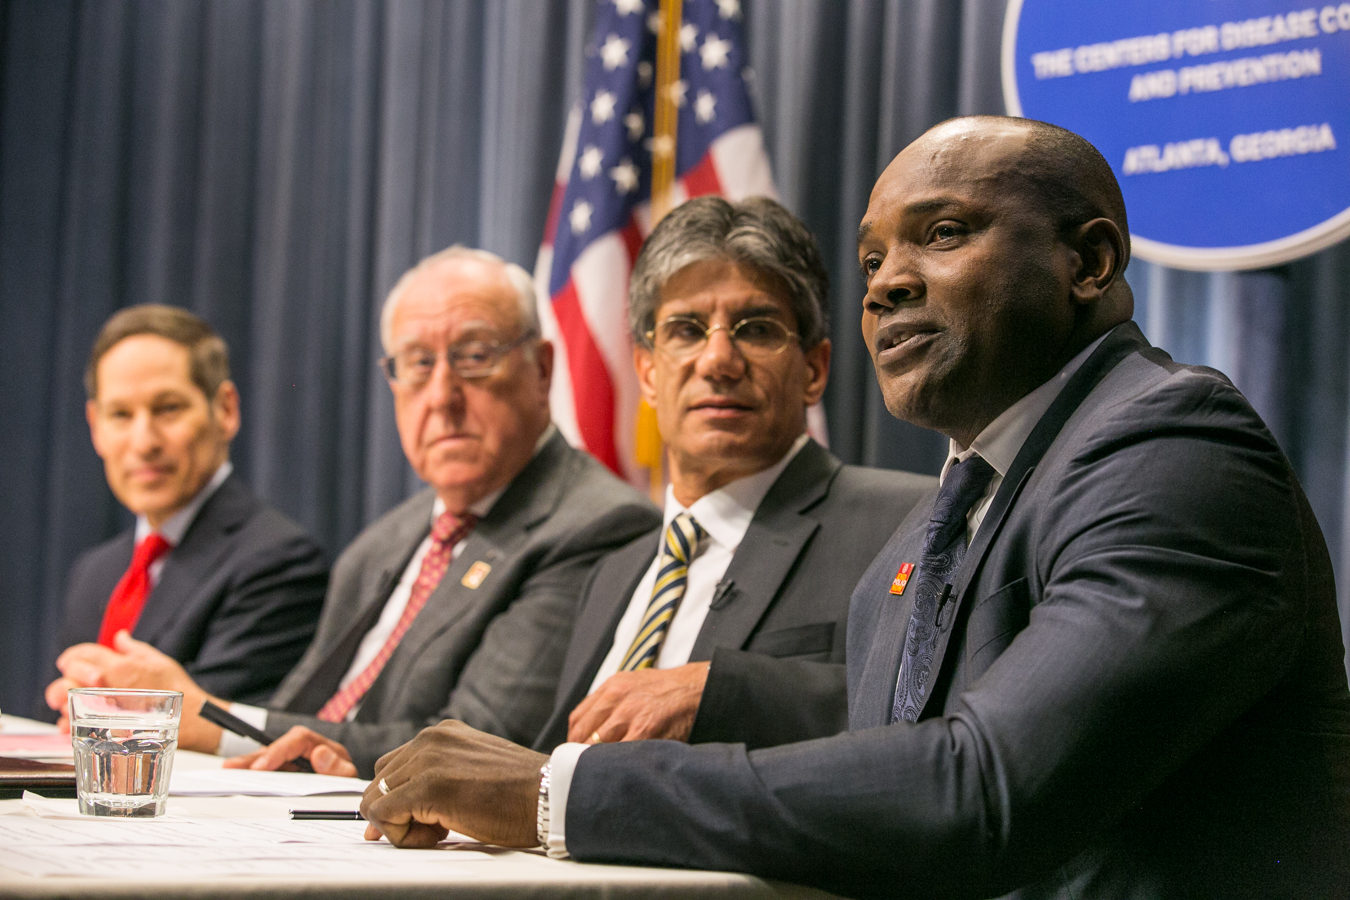 Dennis Ogbe, right, during a World Polio Day panel at the CDC